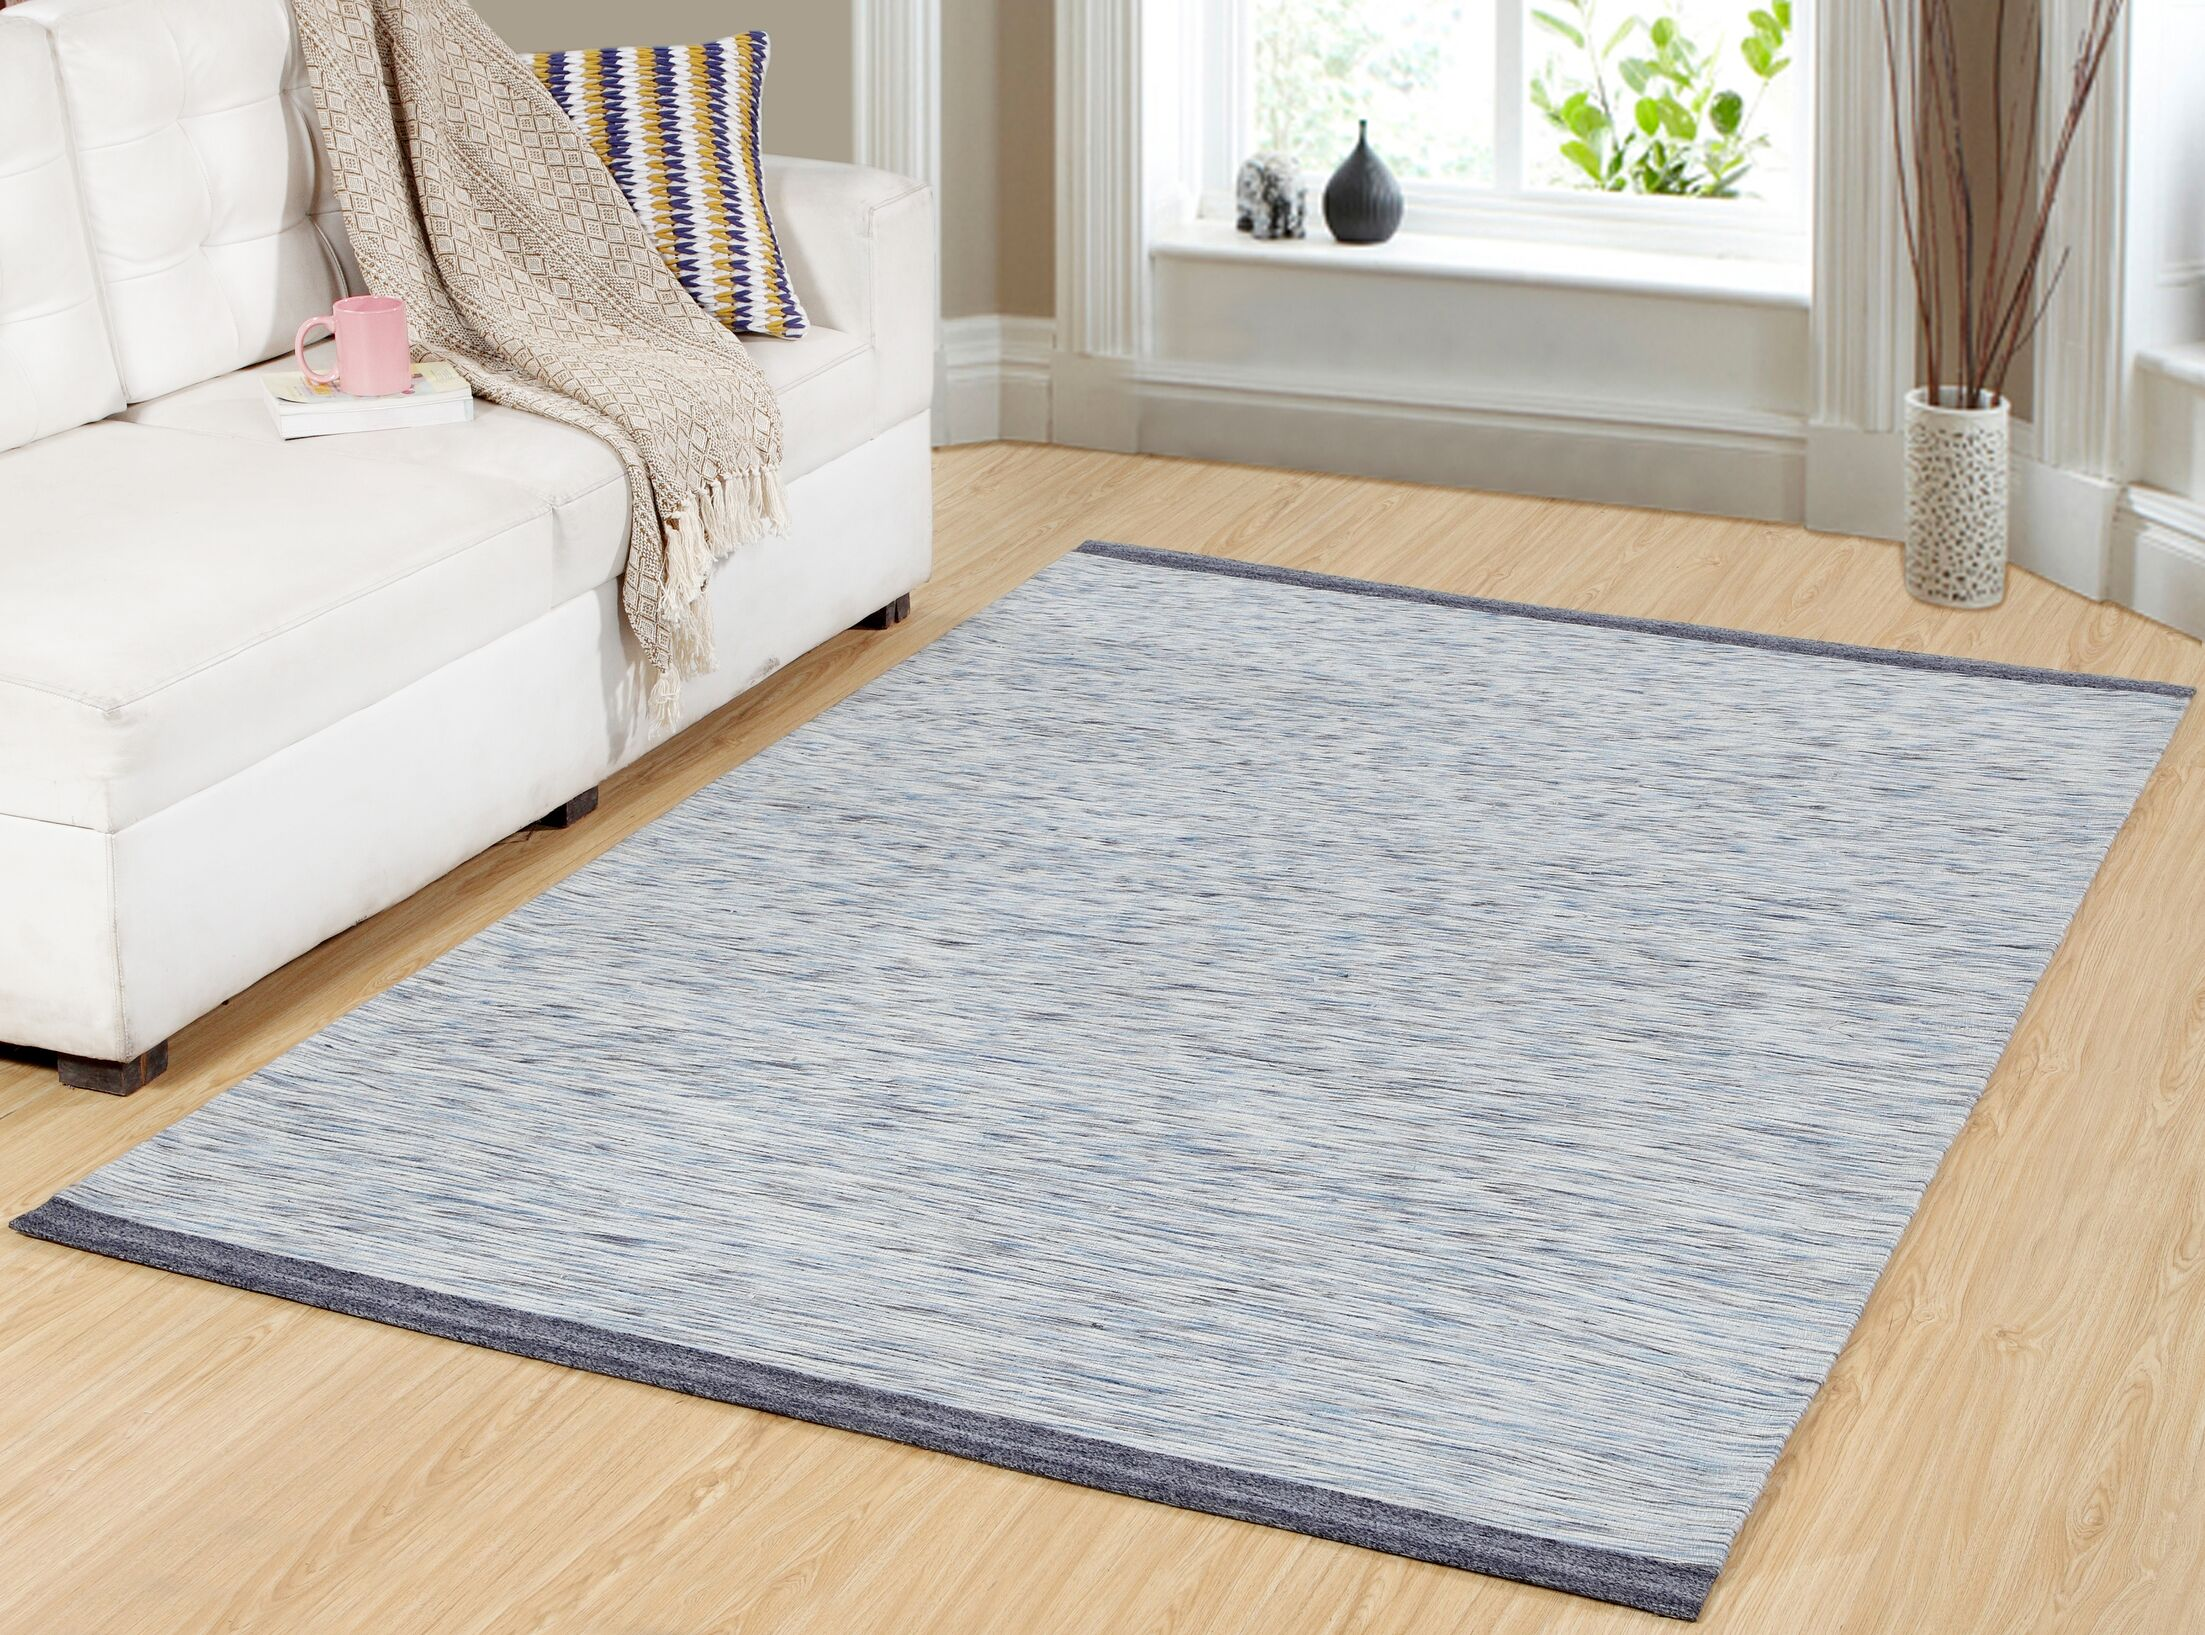 Hawtree Hand-Woven Dark Gray/Light Blue Area Rug Rug Size: Rectangle 8' x 11'